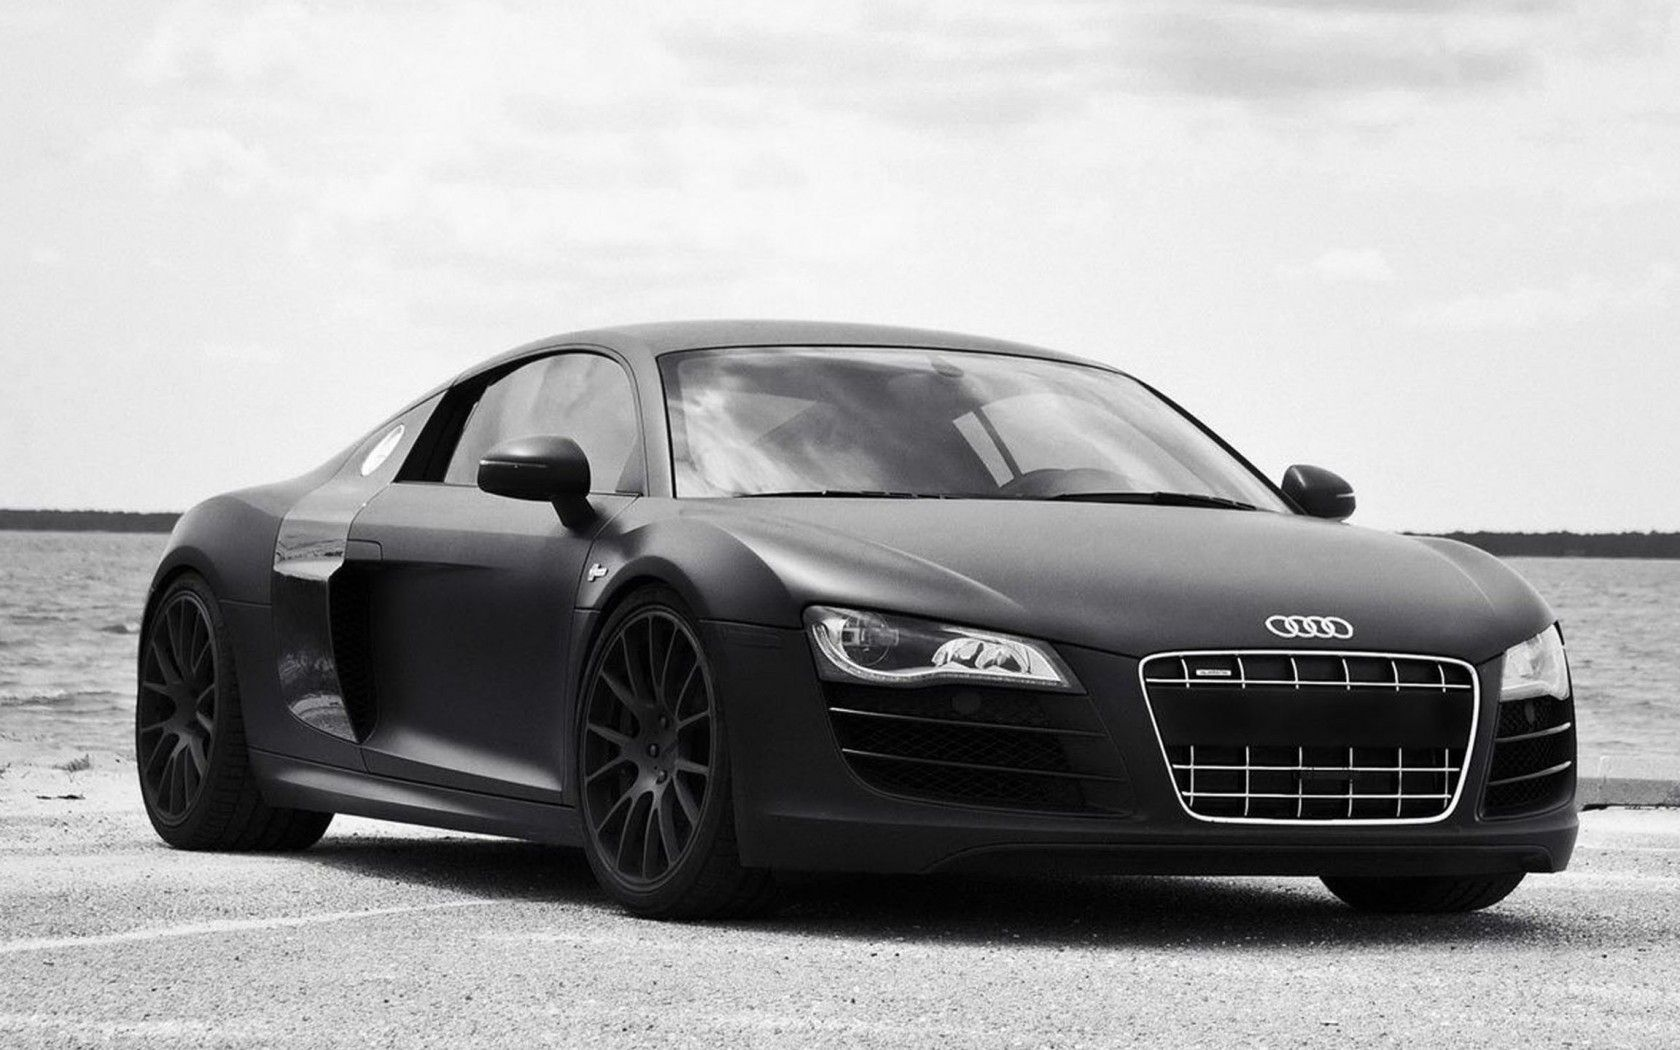 Audi R8 2016 Black Full Overview Picture | Cars | Pinterest | Audi